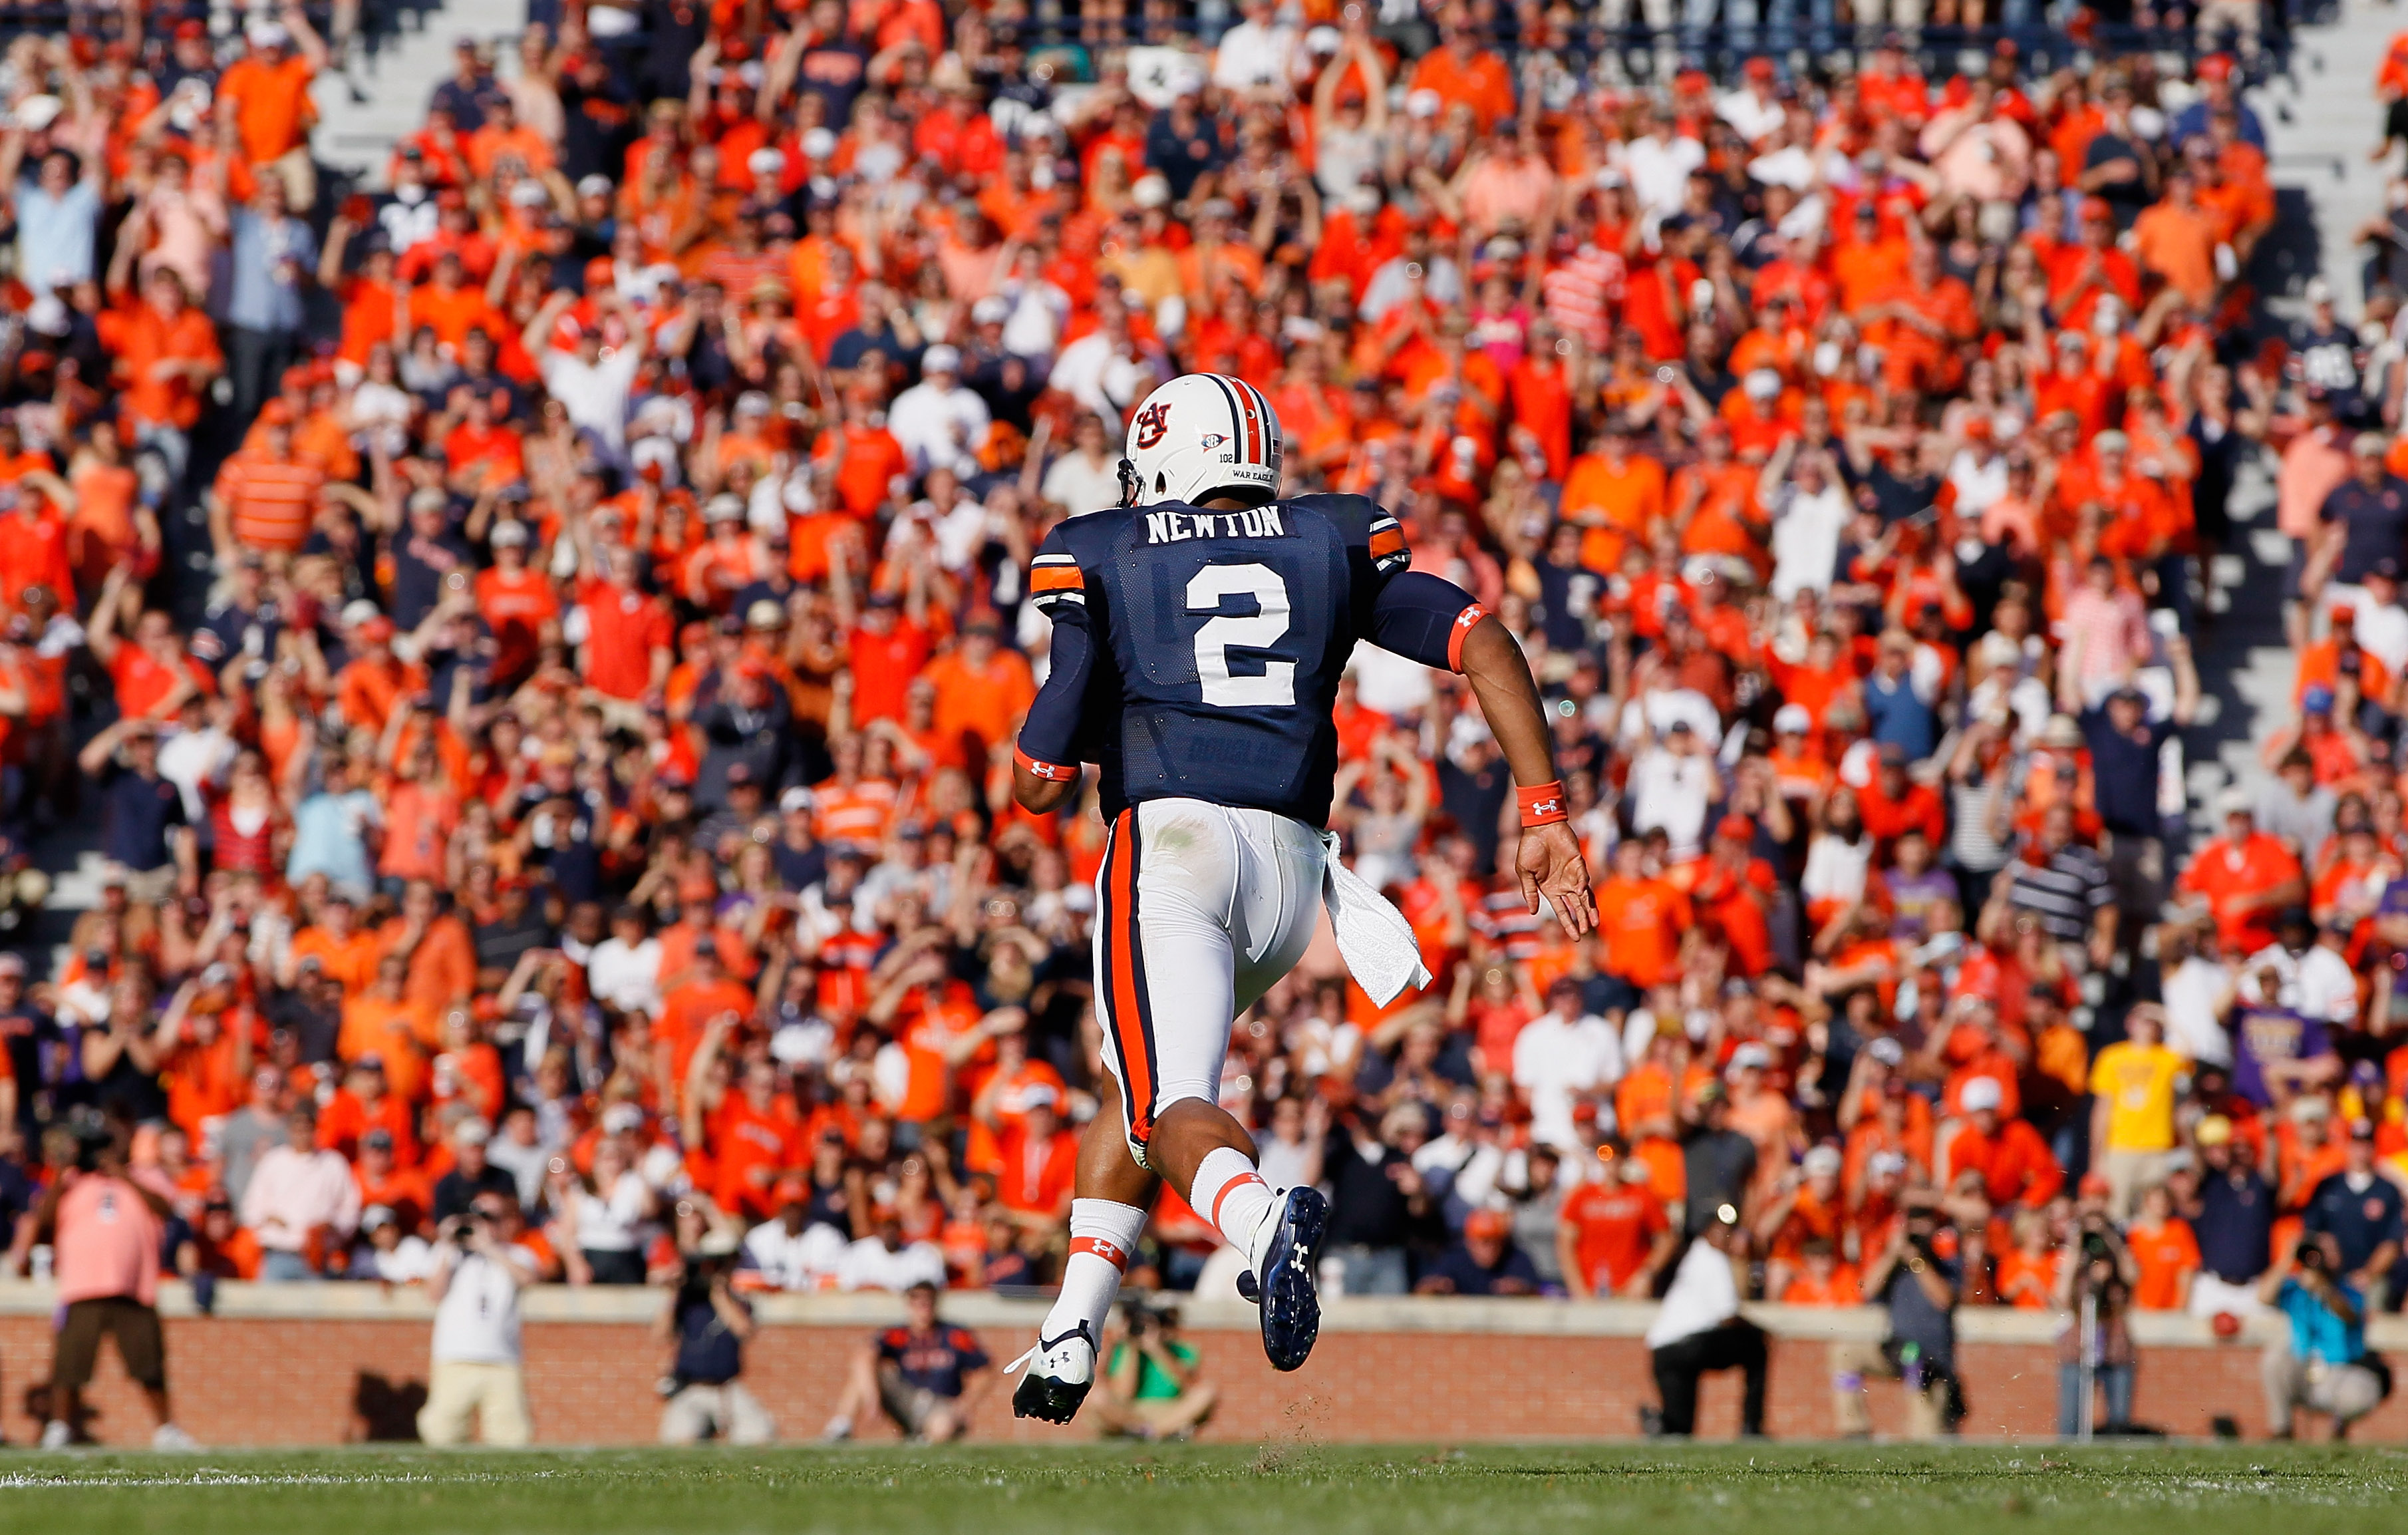 AUBURN, AL - OCTOBER 23:  Quarterback Cameron Newton #2 of the Auburn Tigers rushes upfield against the LSU Tigers at Jordan-Hare Stadium on October 23, 2010 in Auburn, Alabama.  (Photo by Kevin C. Cox/Getty Images)